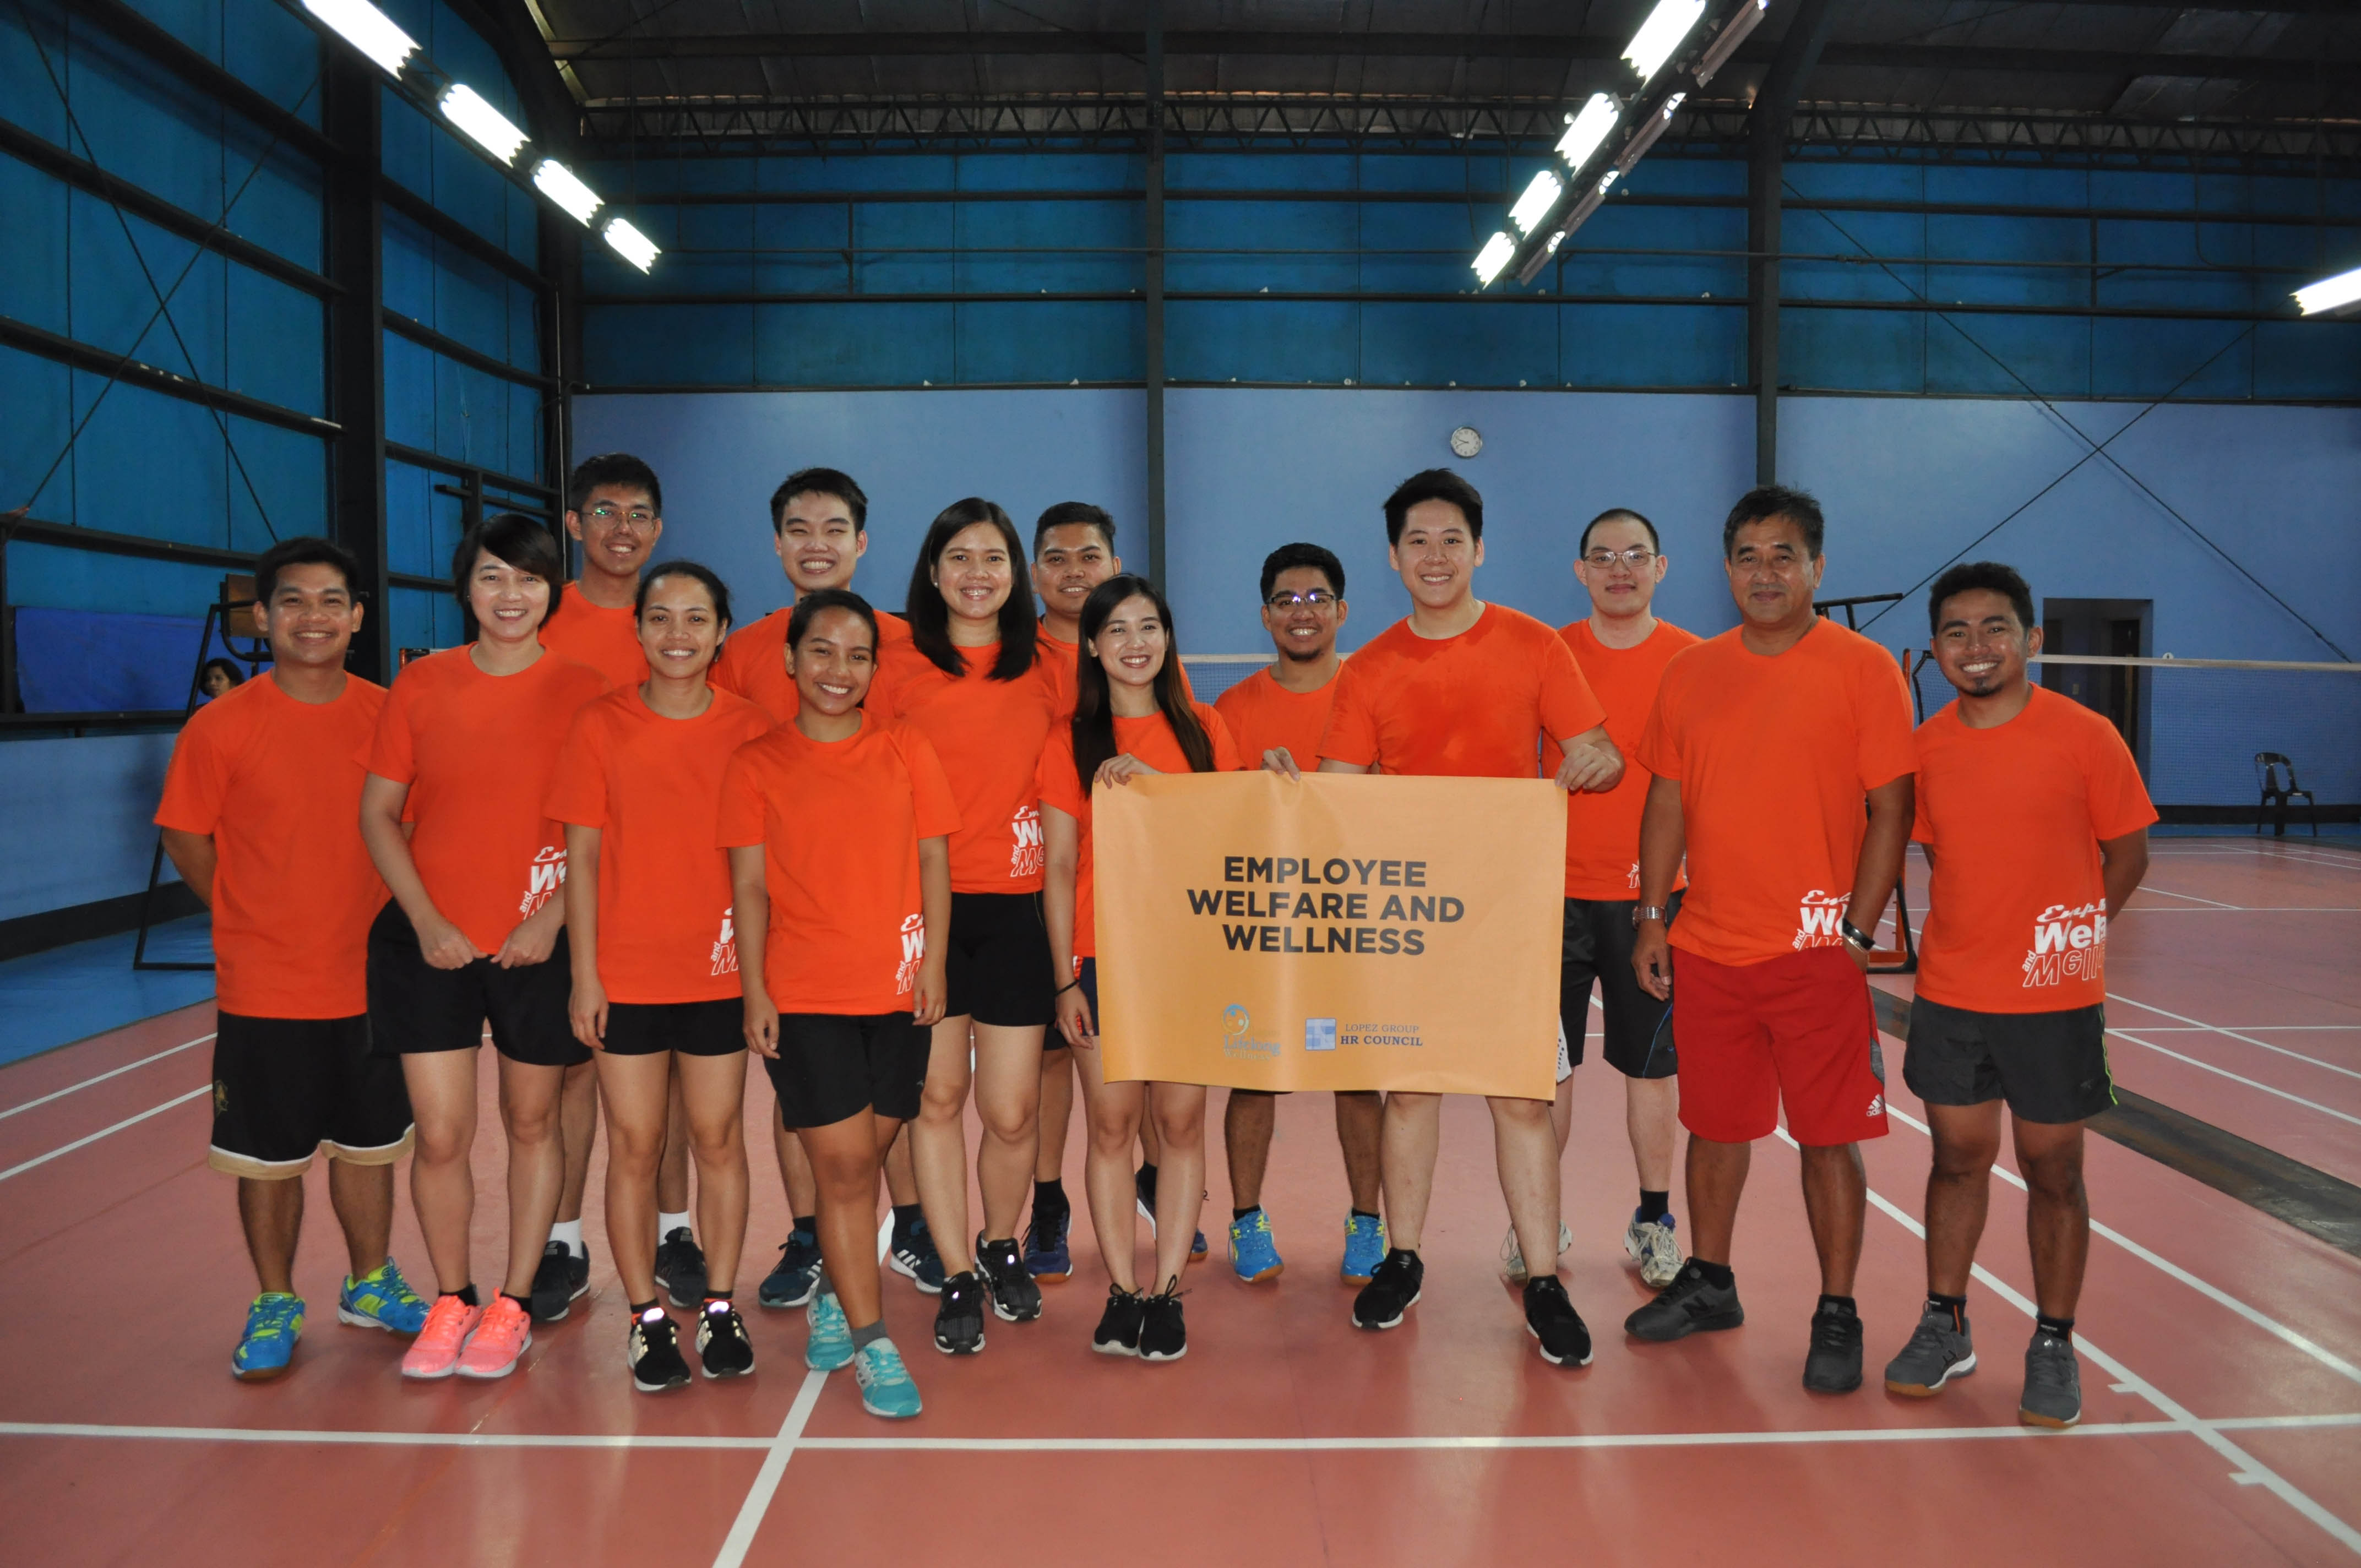 Team Employee Welfare and Wellness